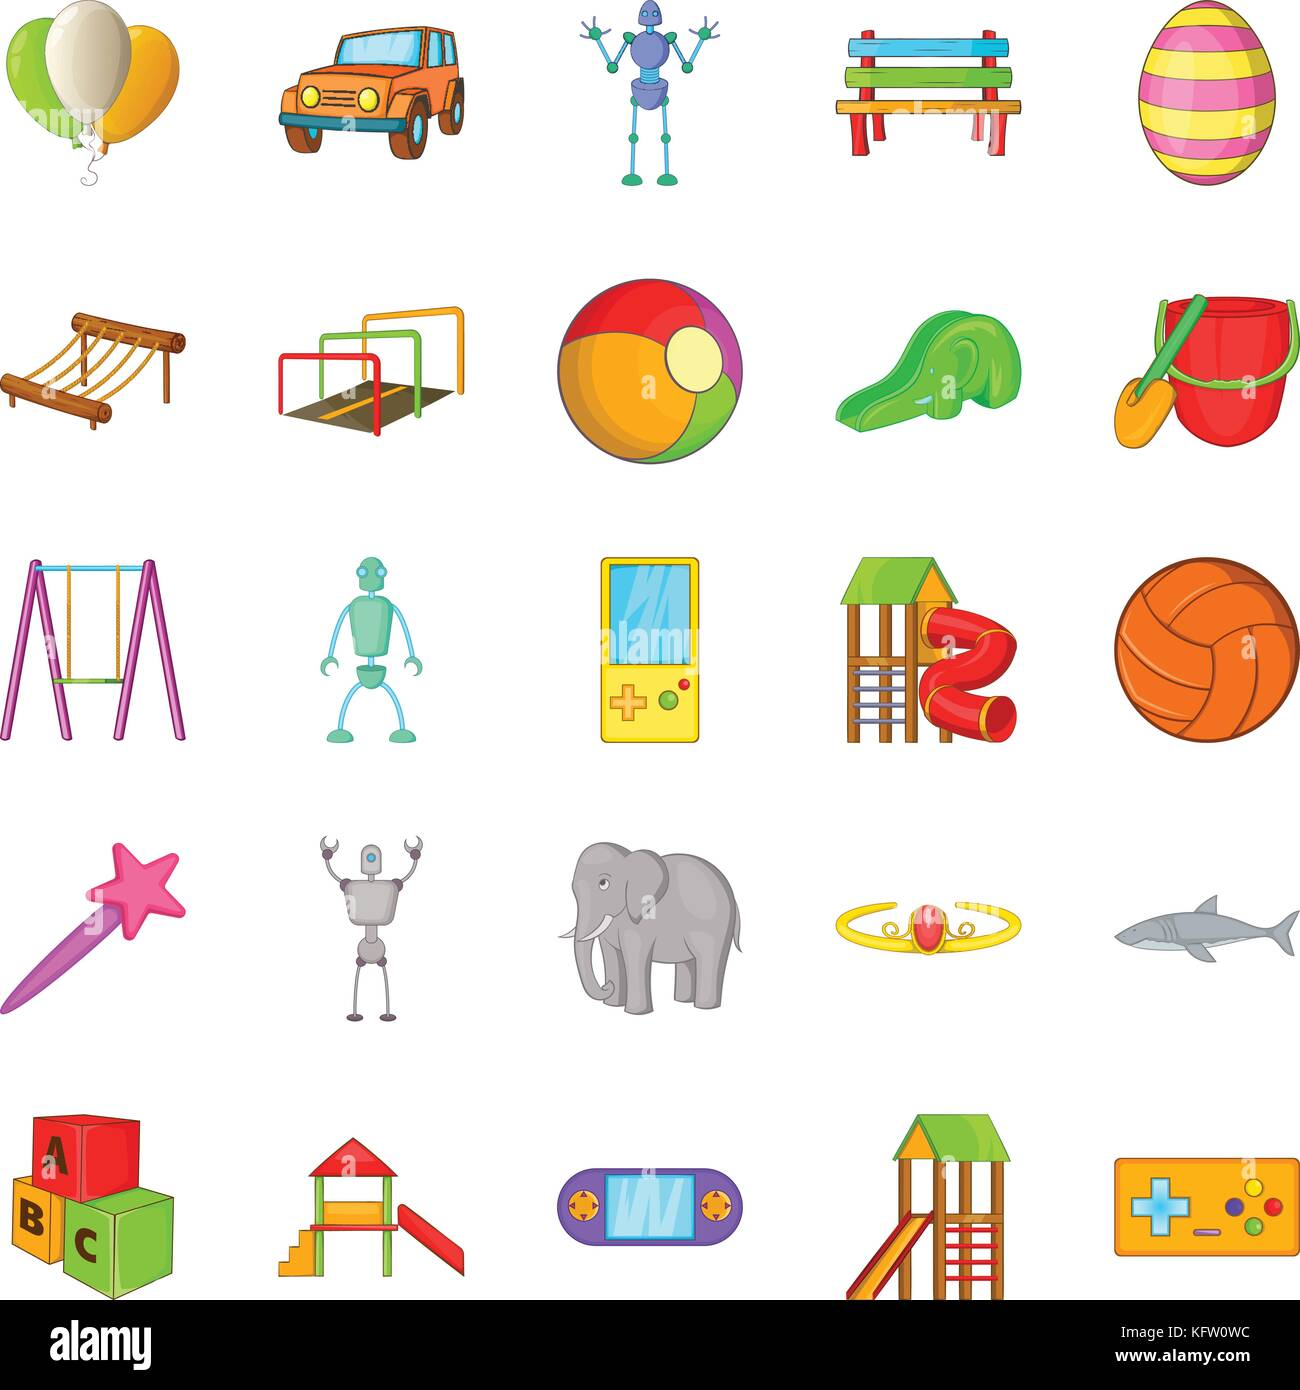 School Yard Stock Vector Images Alamy